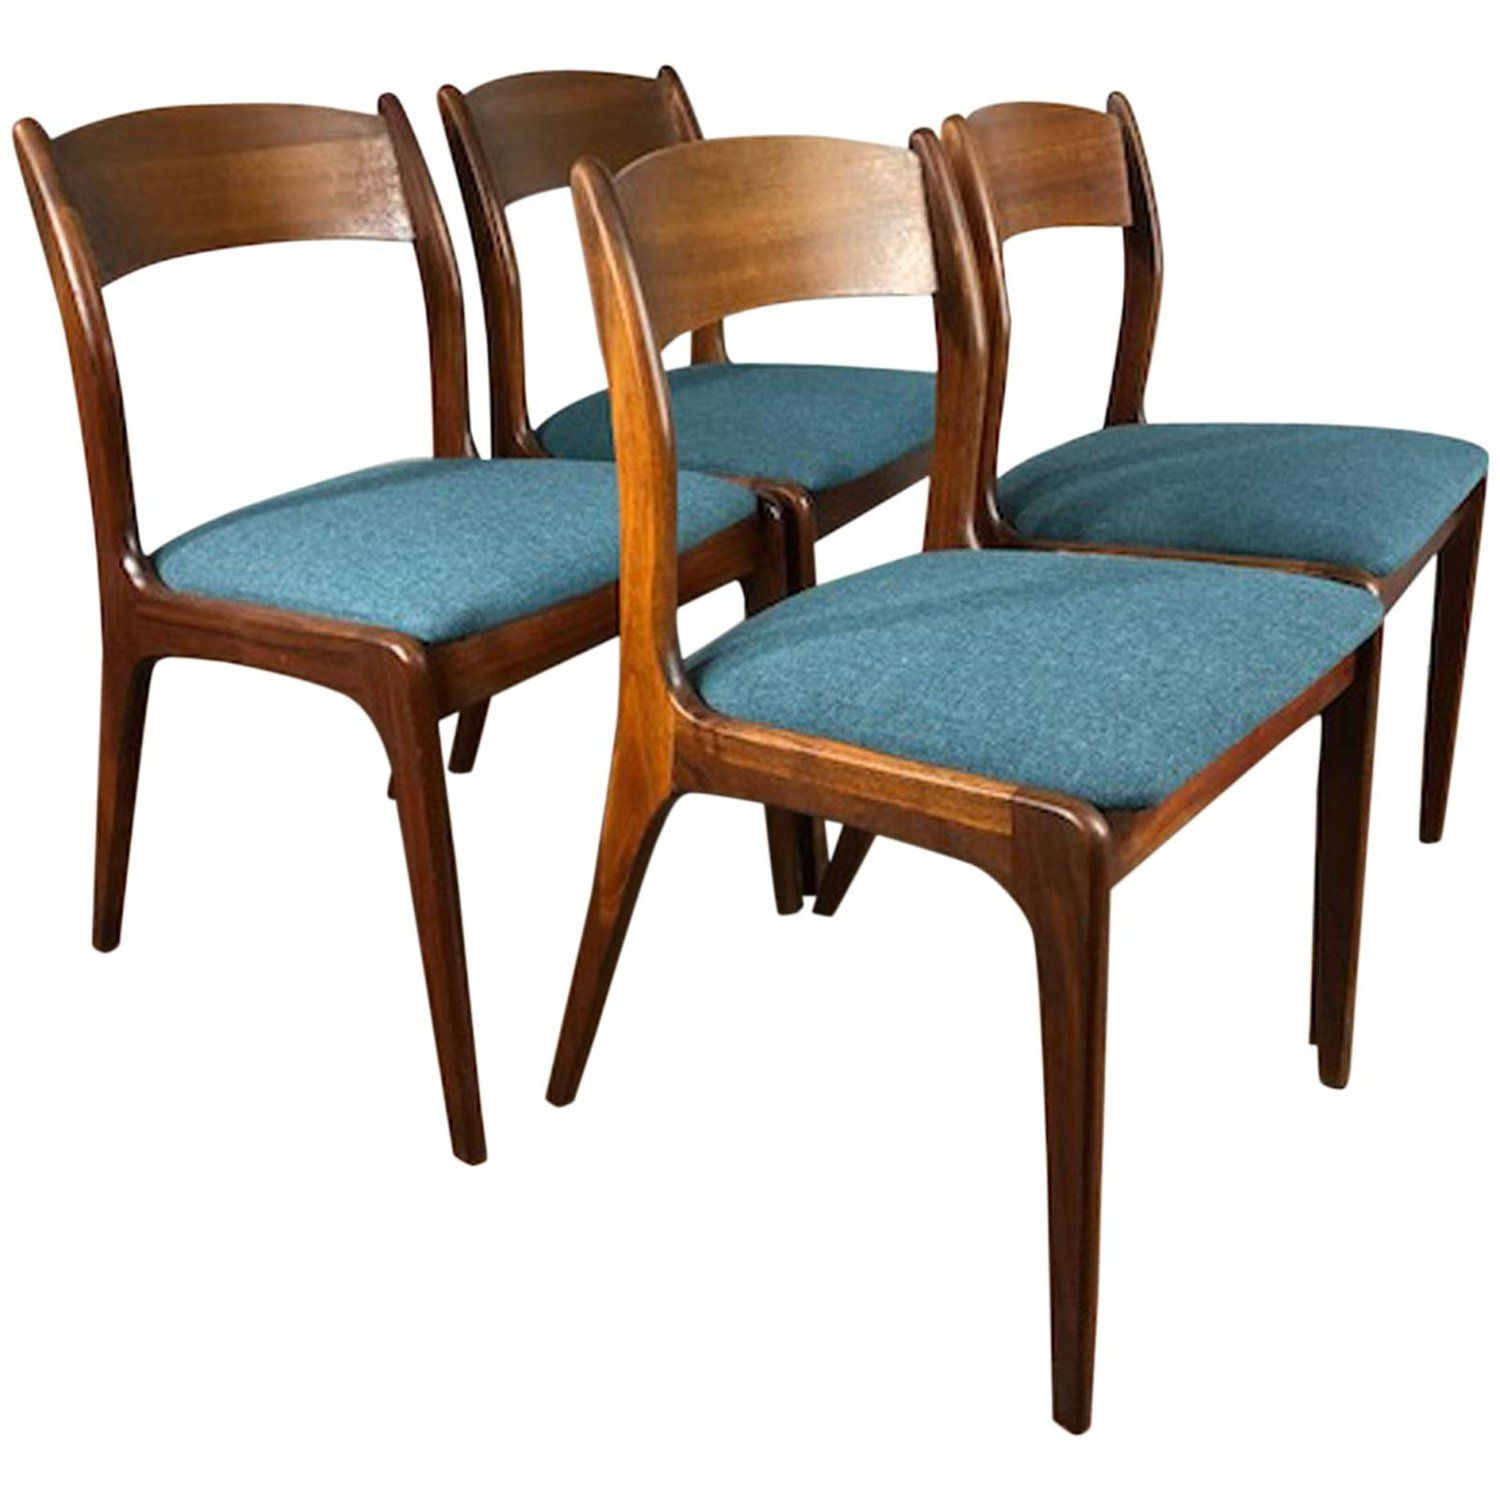 dining chairs for sale - HD1500×1500